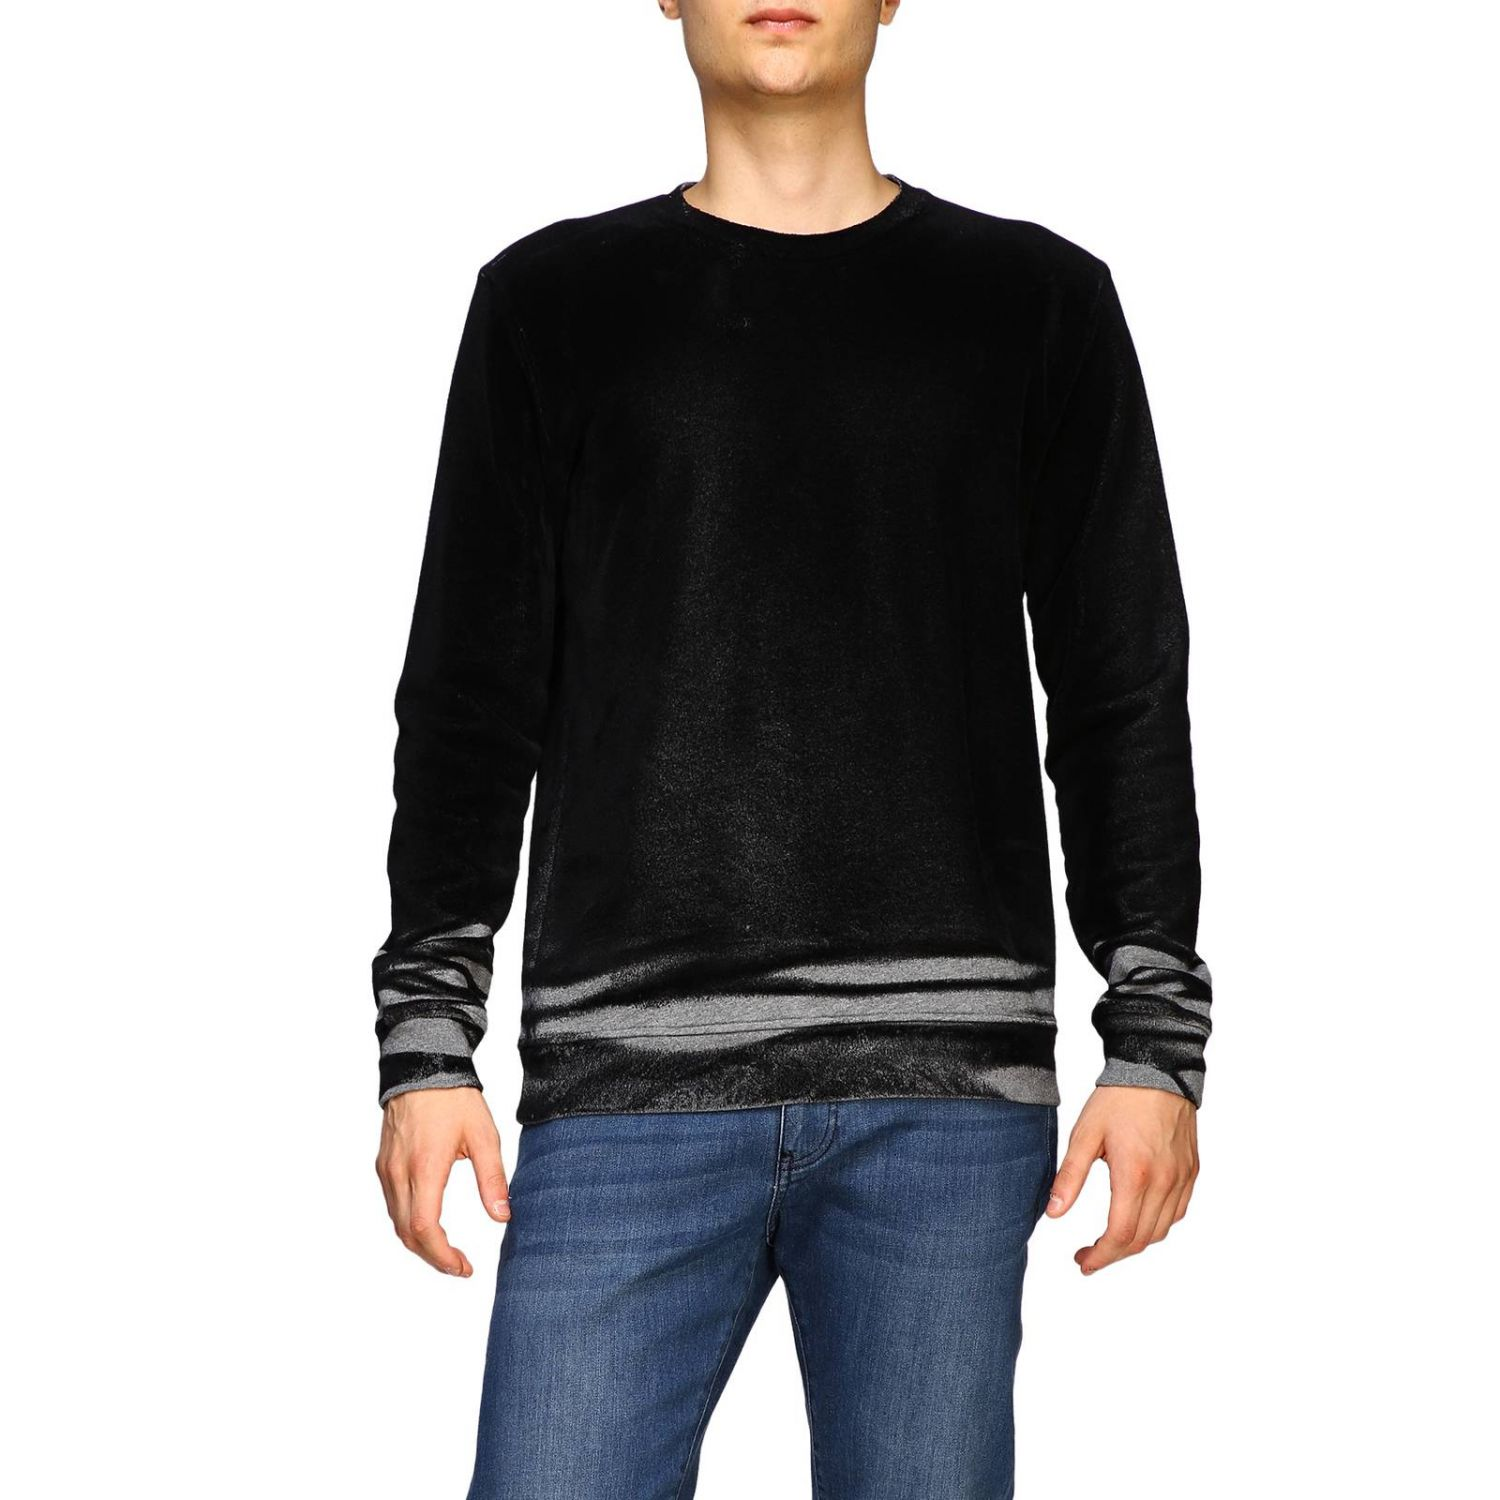 Sweater men N° 21 black 1